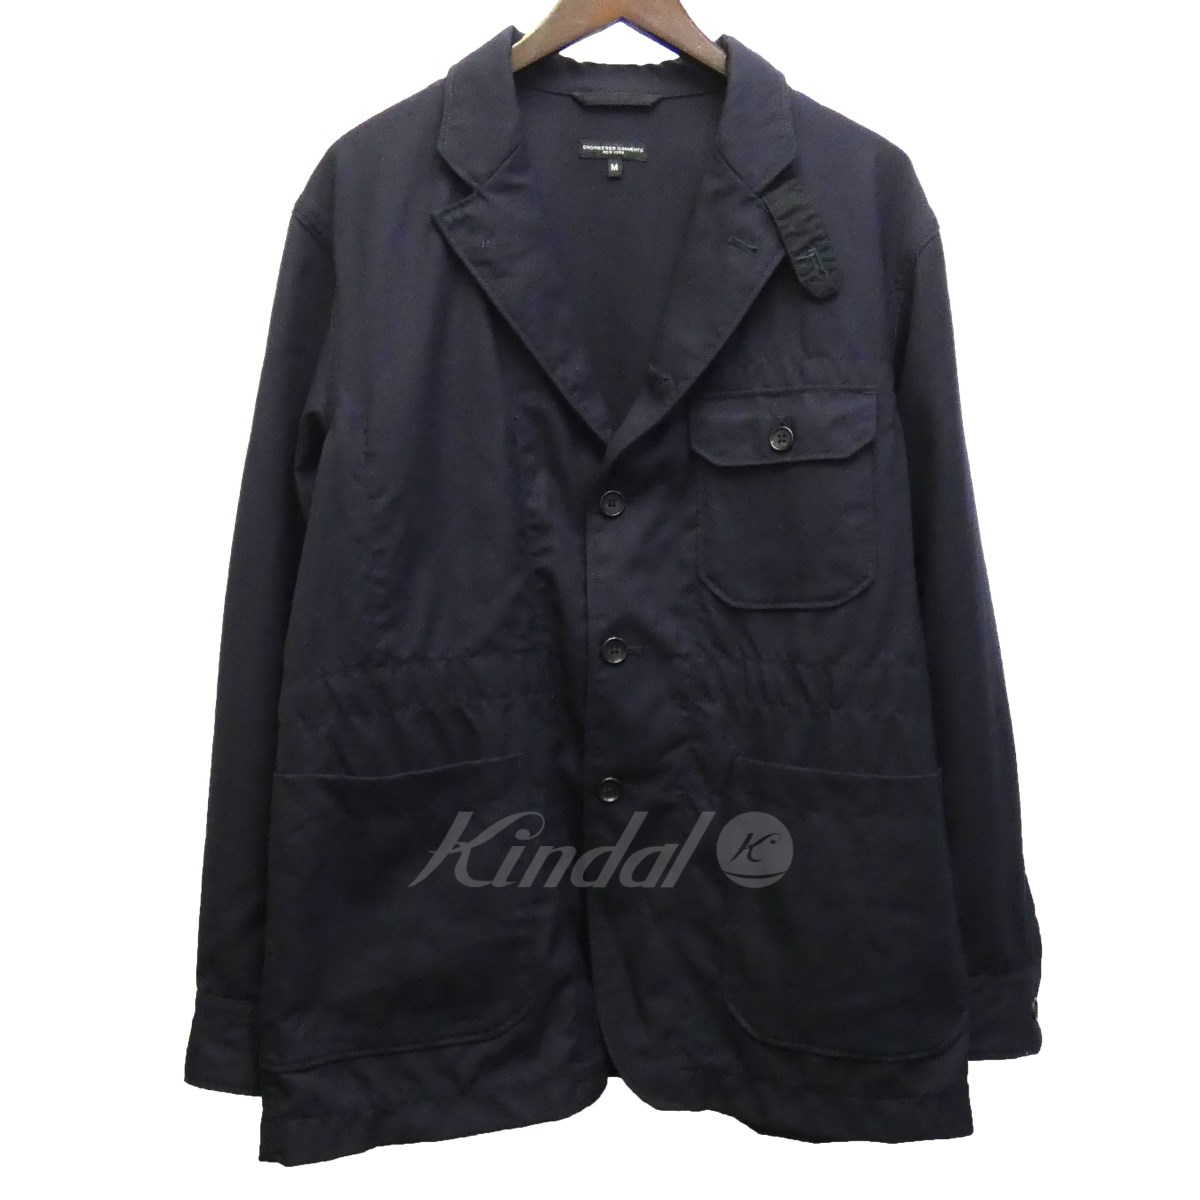 【中古】Engineered Garments 17AW 「Benson Jacket-Uniform Serge」 ベンソンジャケット 【送料無料】 【122019】 【KIND1551】